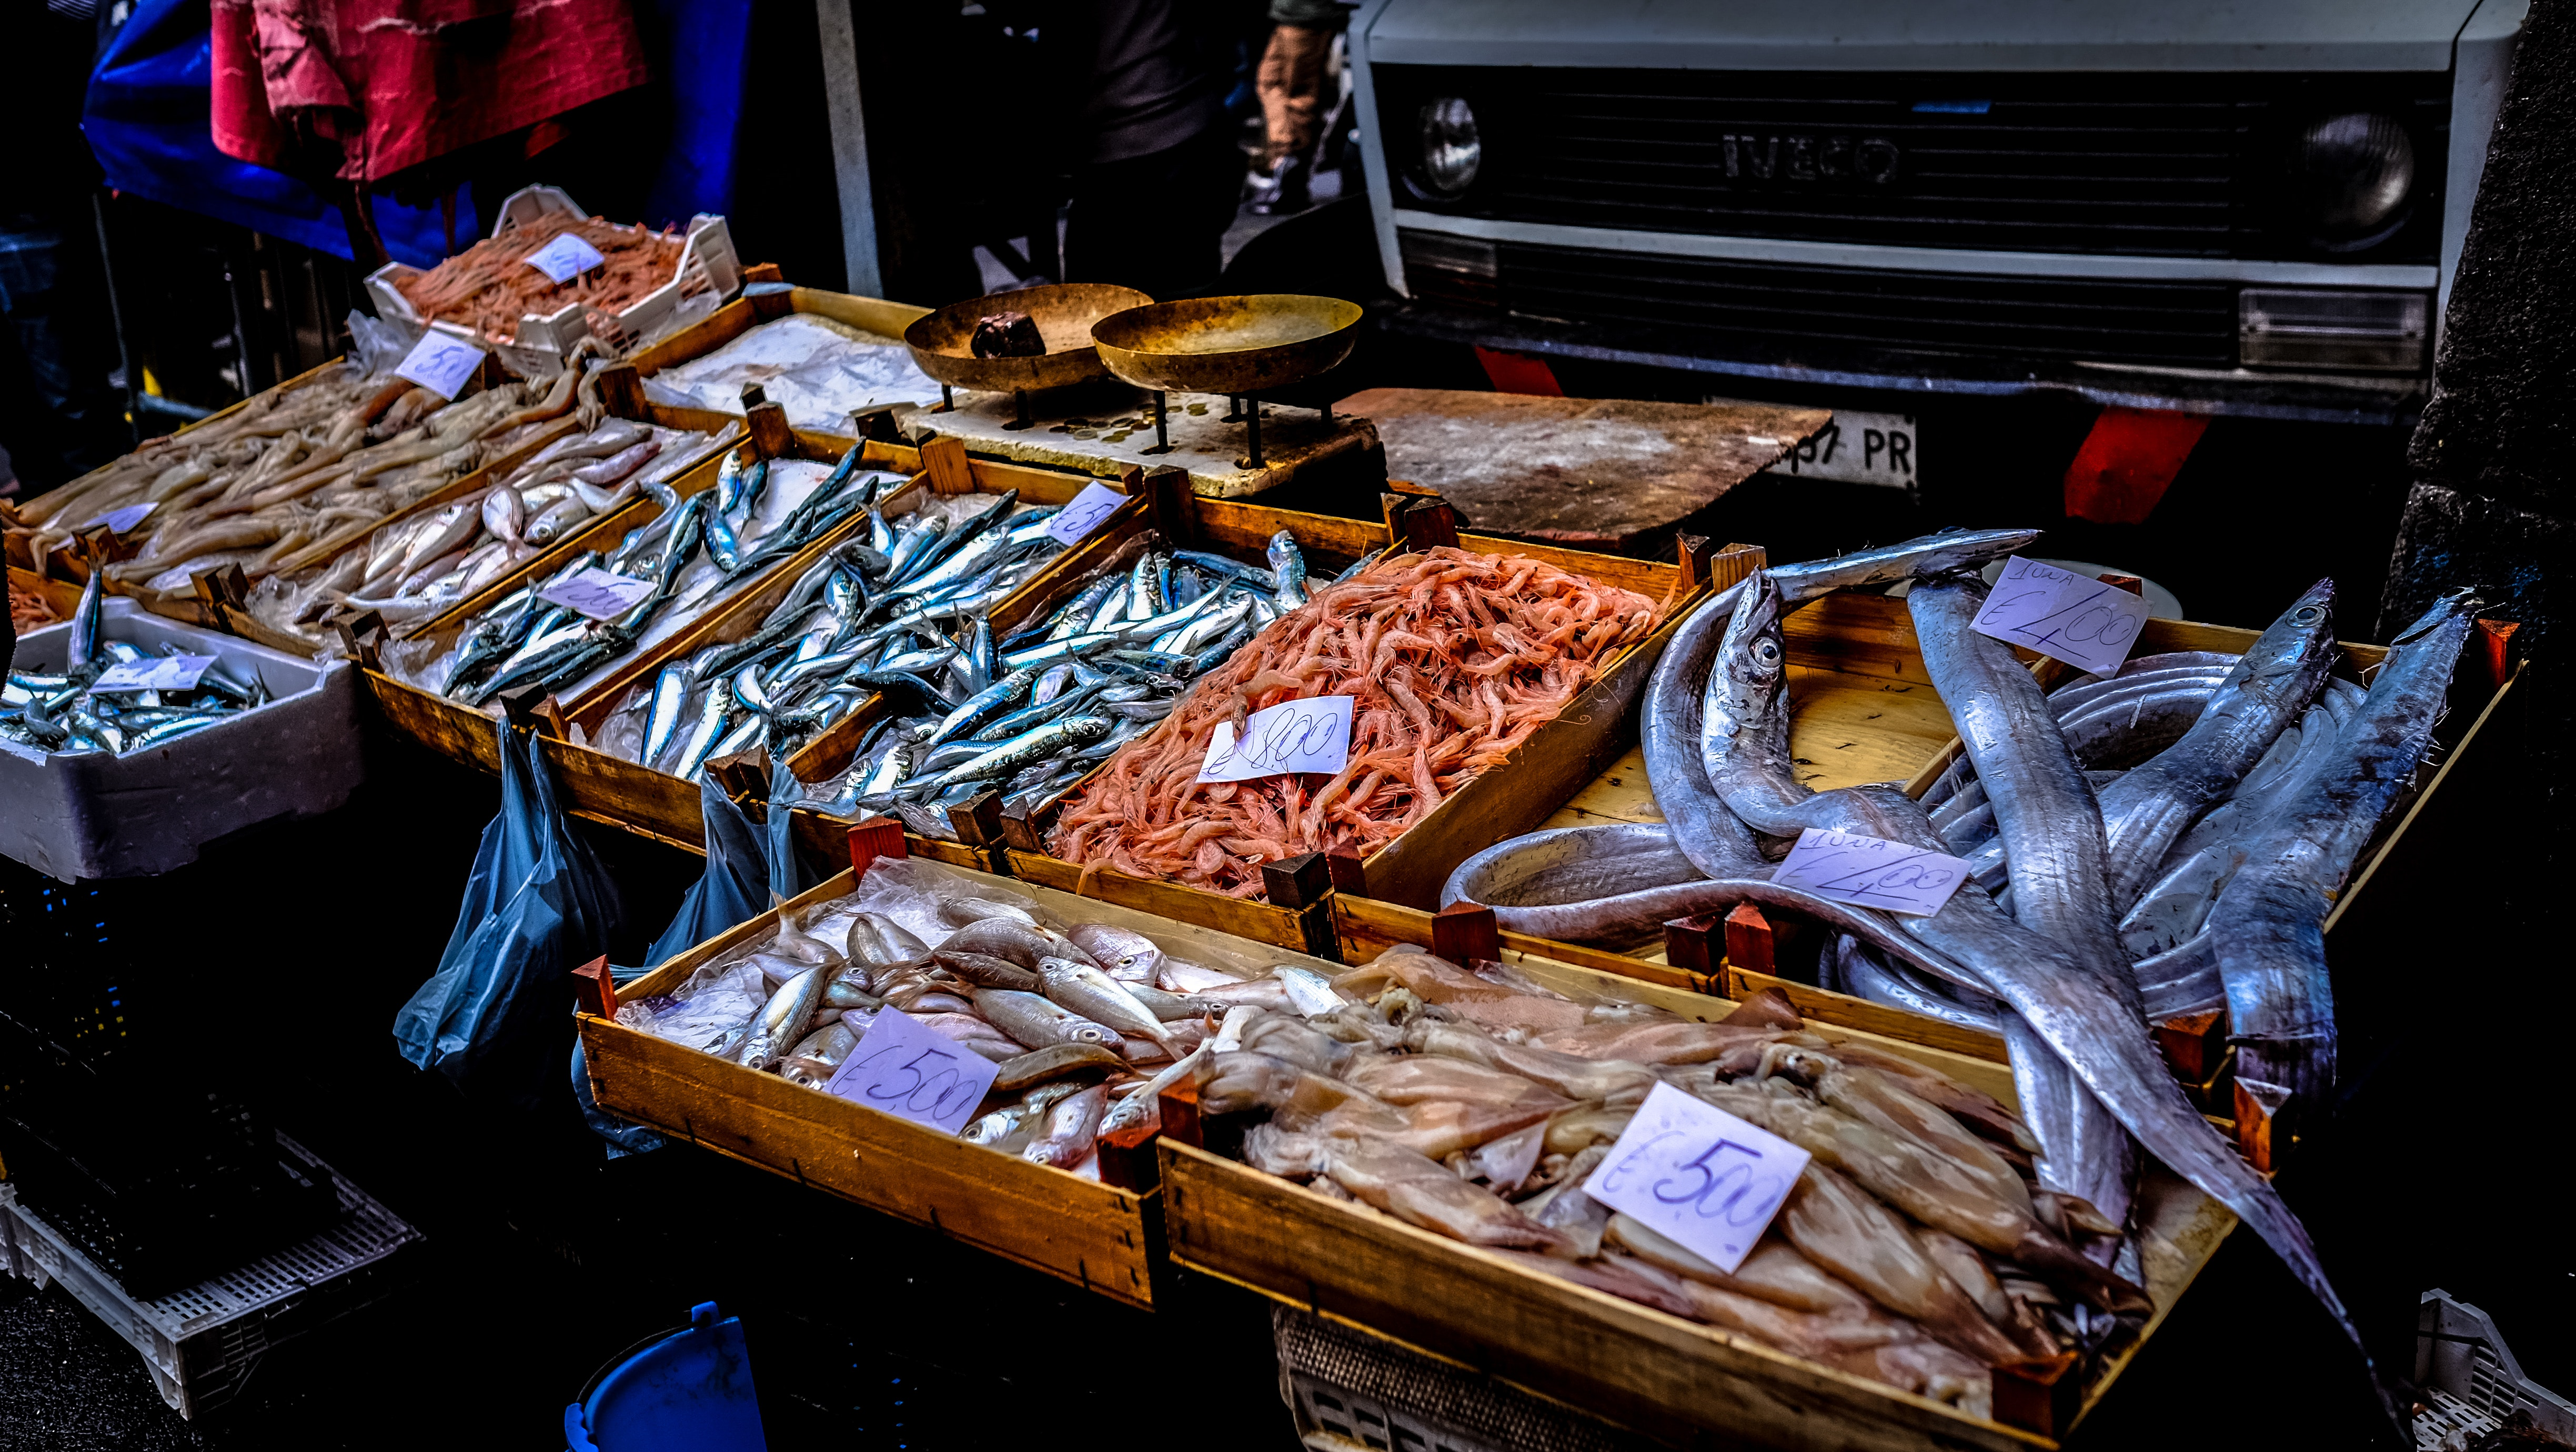 Brown Wooden Case, Fish, Food, Market, Sale, HQ Photo